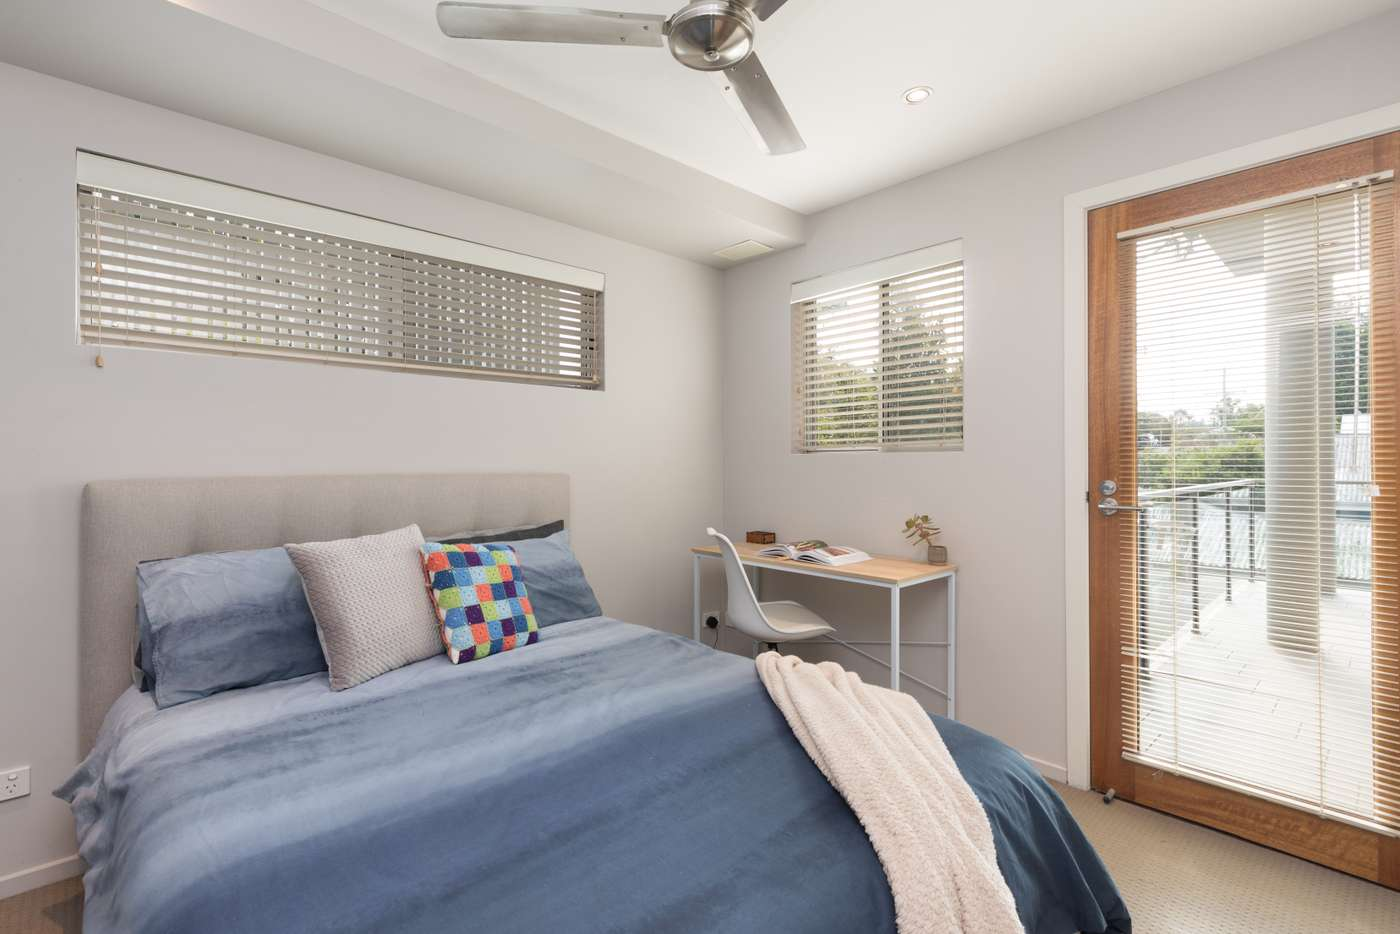 Fifth view of Homely apartment listing, 8/81 Maryvale Street, Toowong QLD 4066